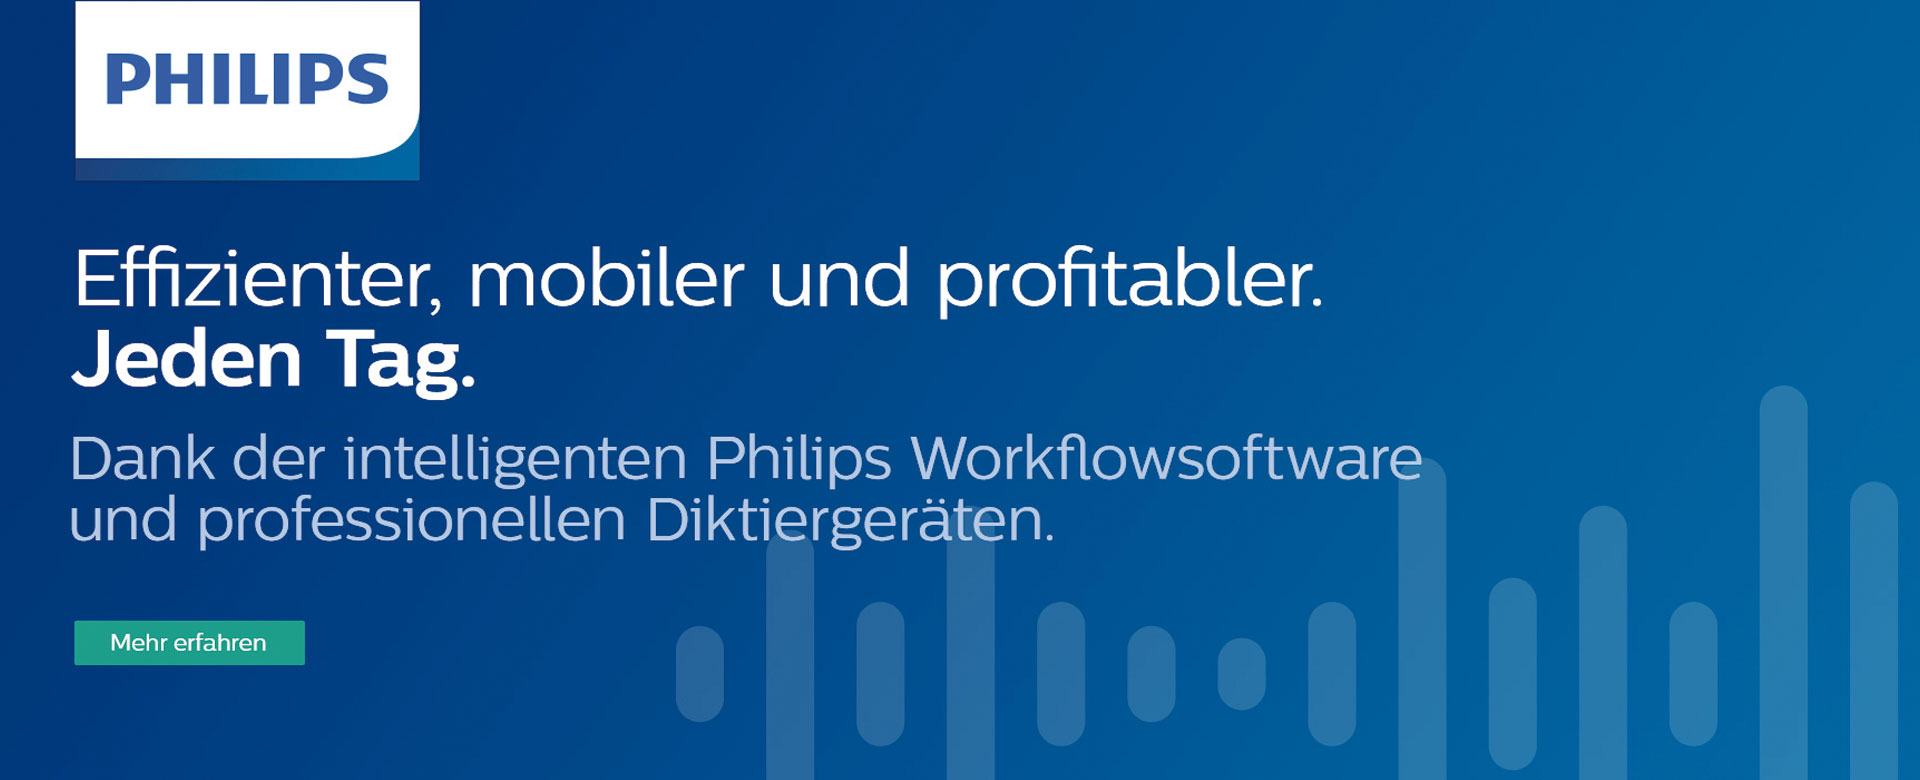 banner-philips-software-jeden-tag-1920x780-de